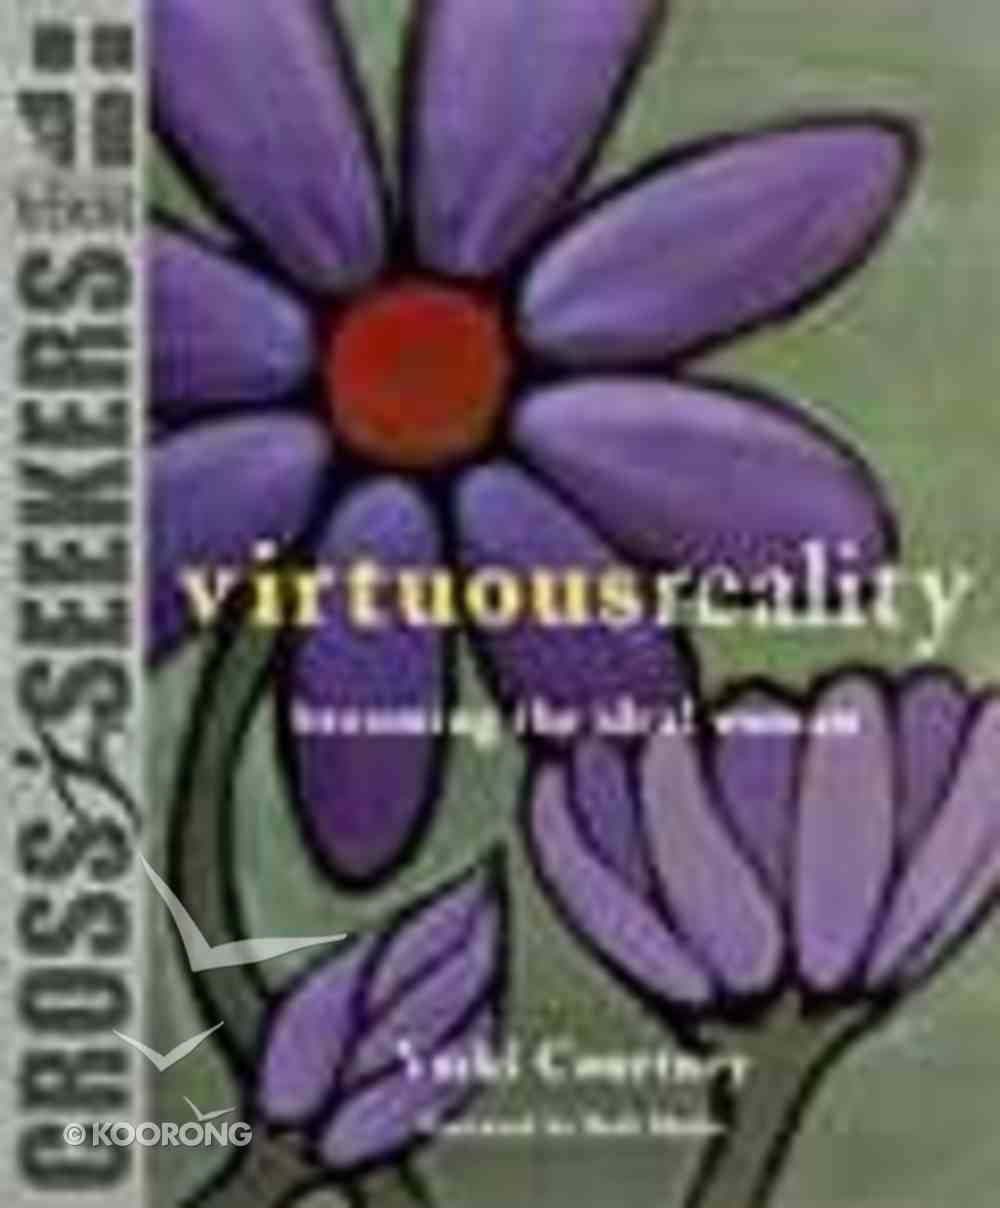 Cross Seekers: Virtuous Reality Paperback